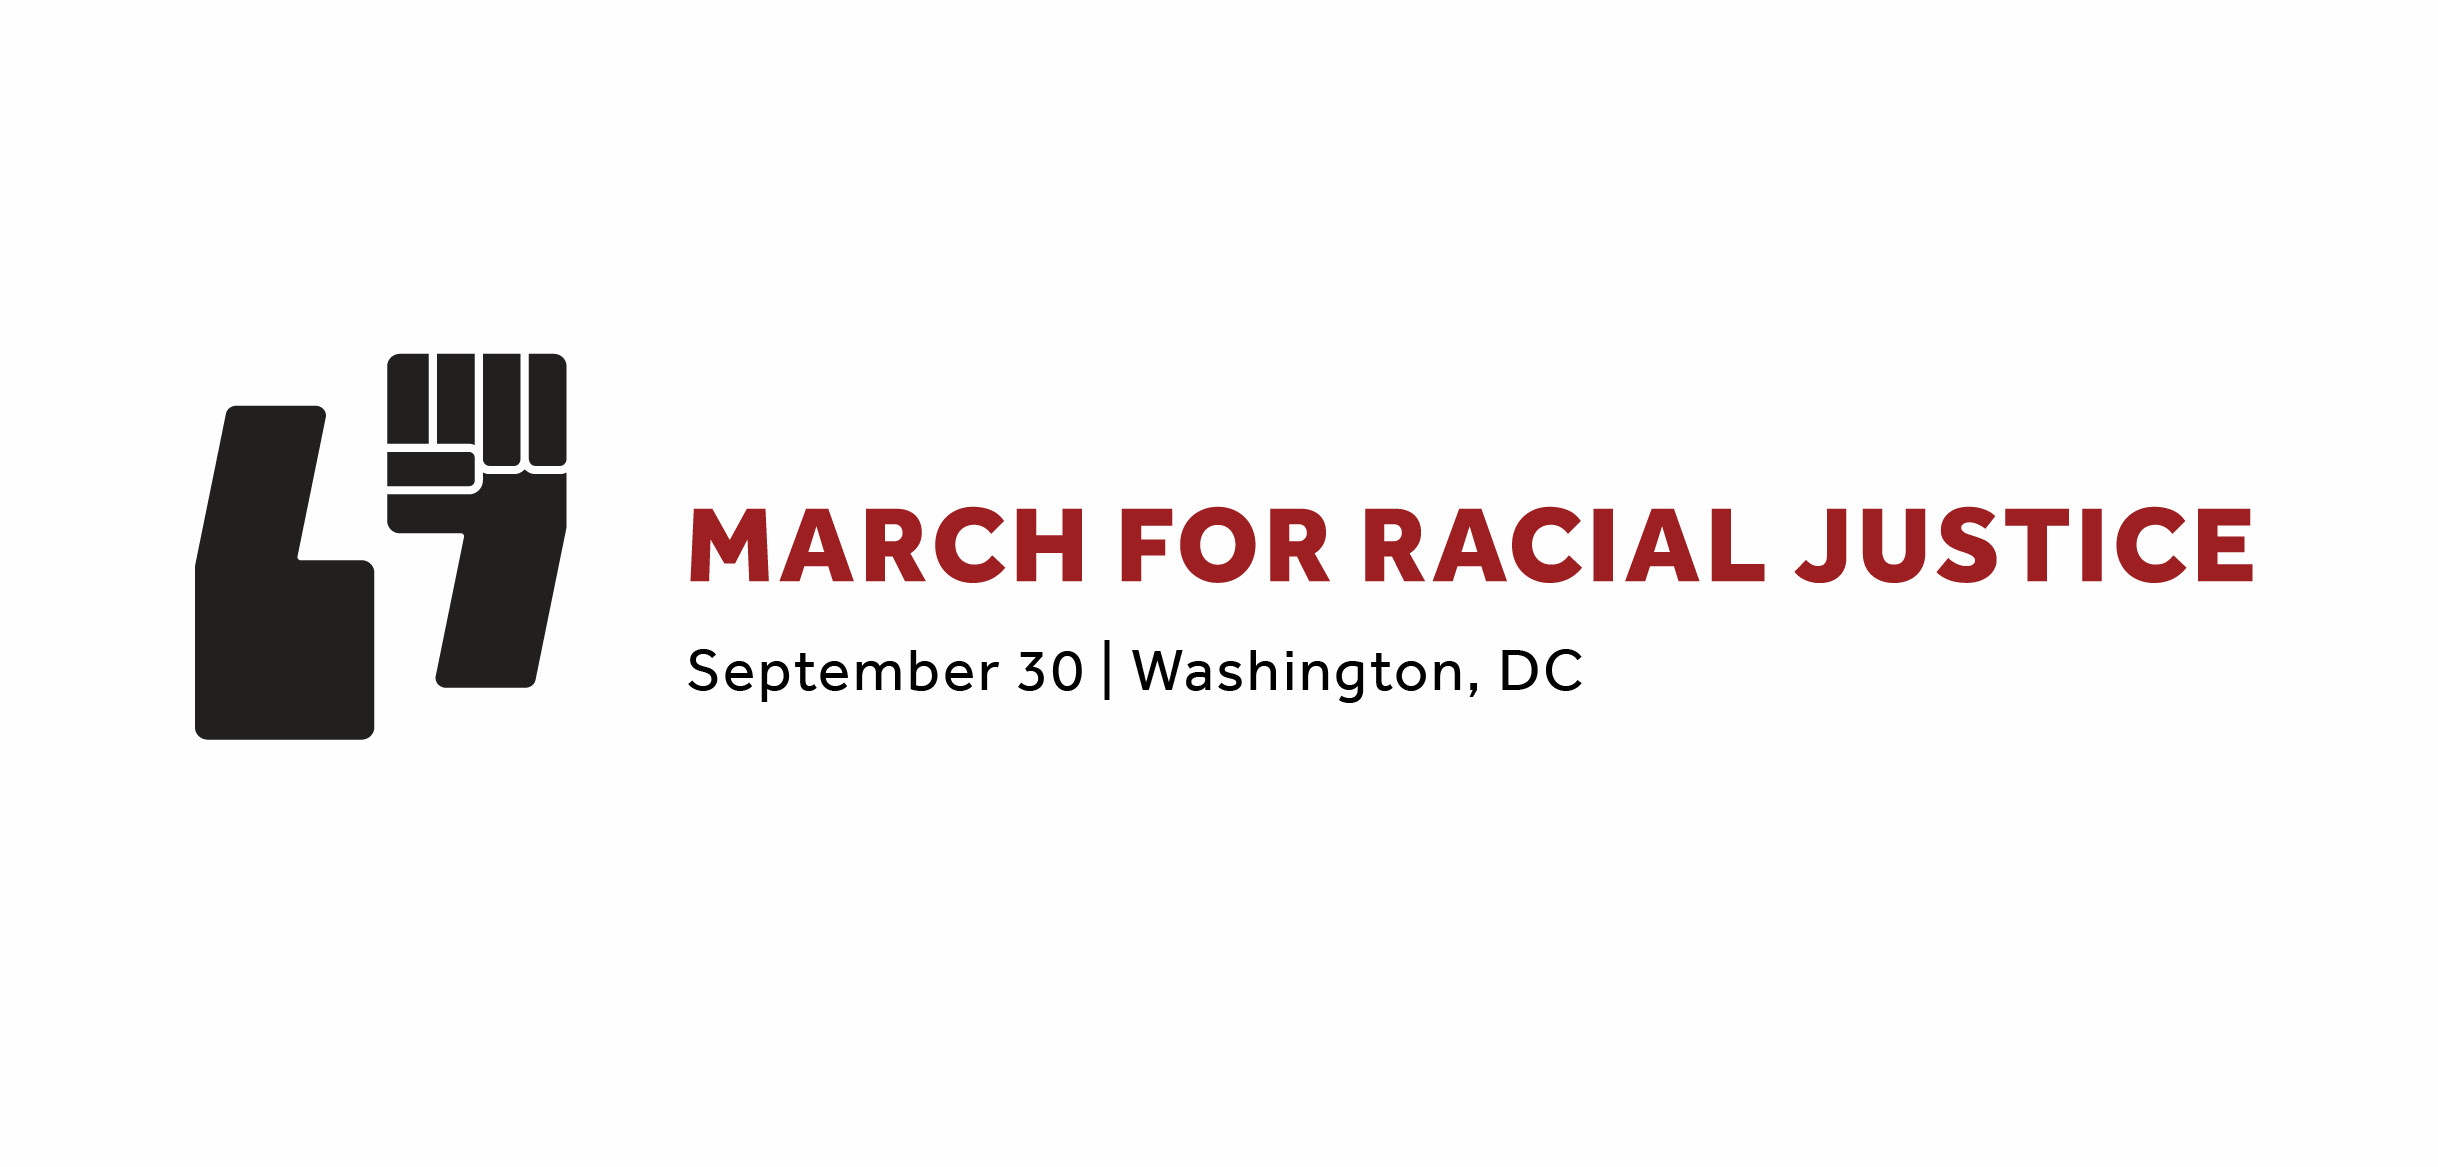 March for Racial Justice Logo consists of a black quote mark and a black fist having a